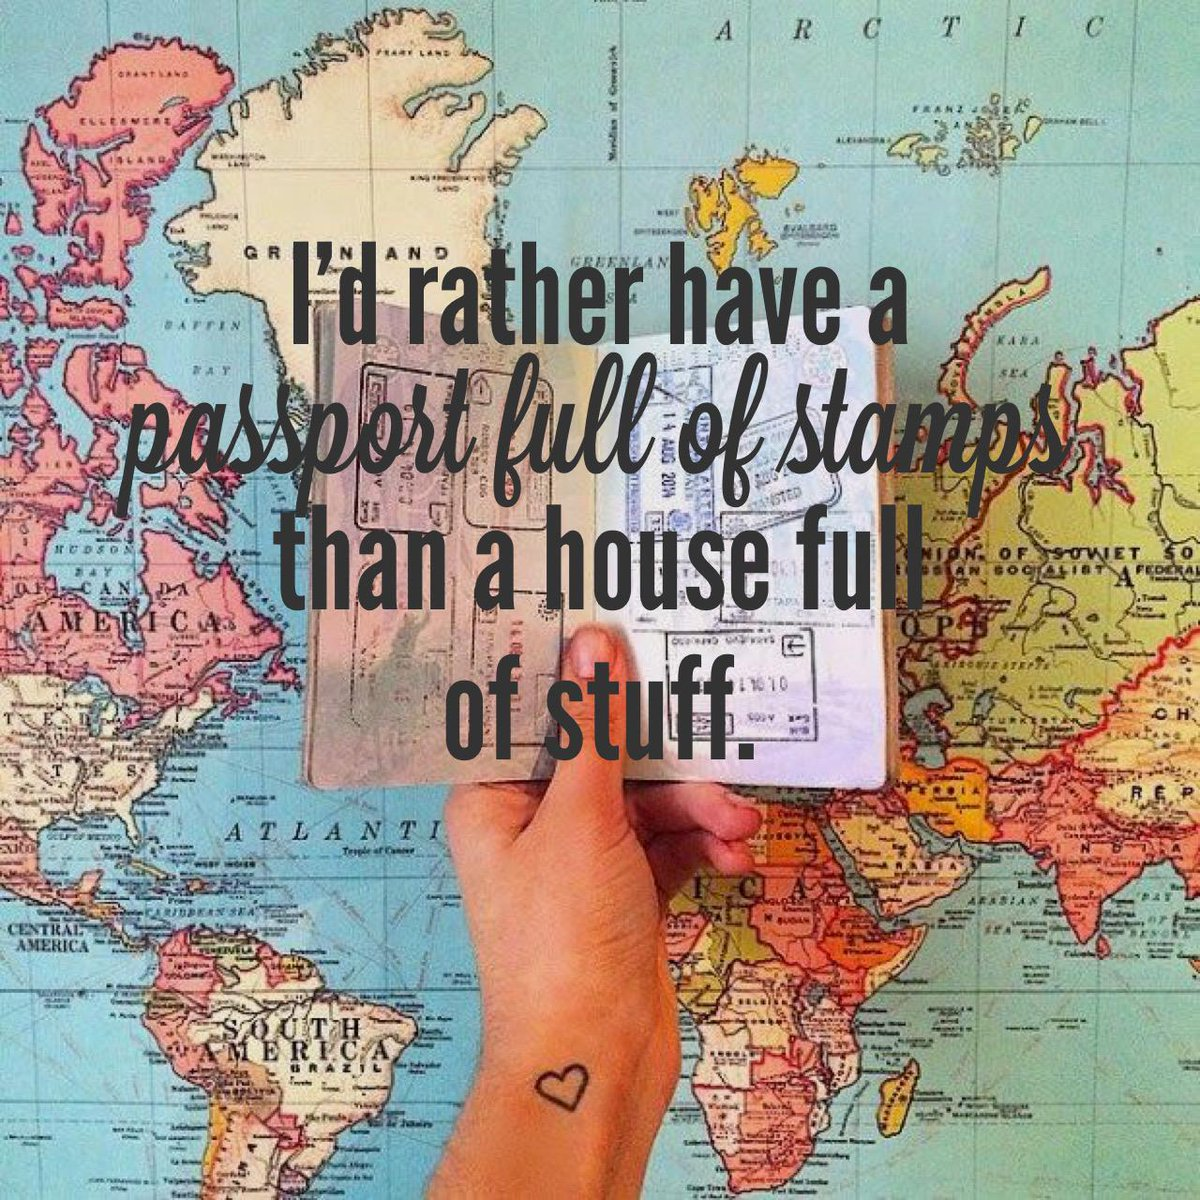 I'd rather have a passport full of stamps than a house full of stuff. Here's why: http://t.co/B5dyLlVeuv #travelquote http://t.co/iLjghBR8vR